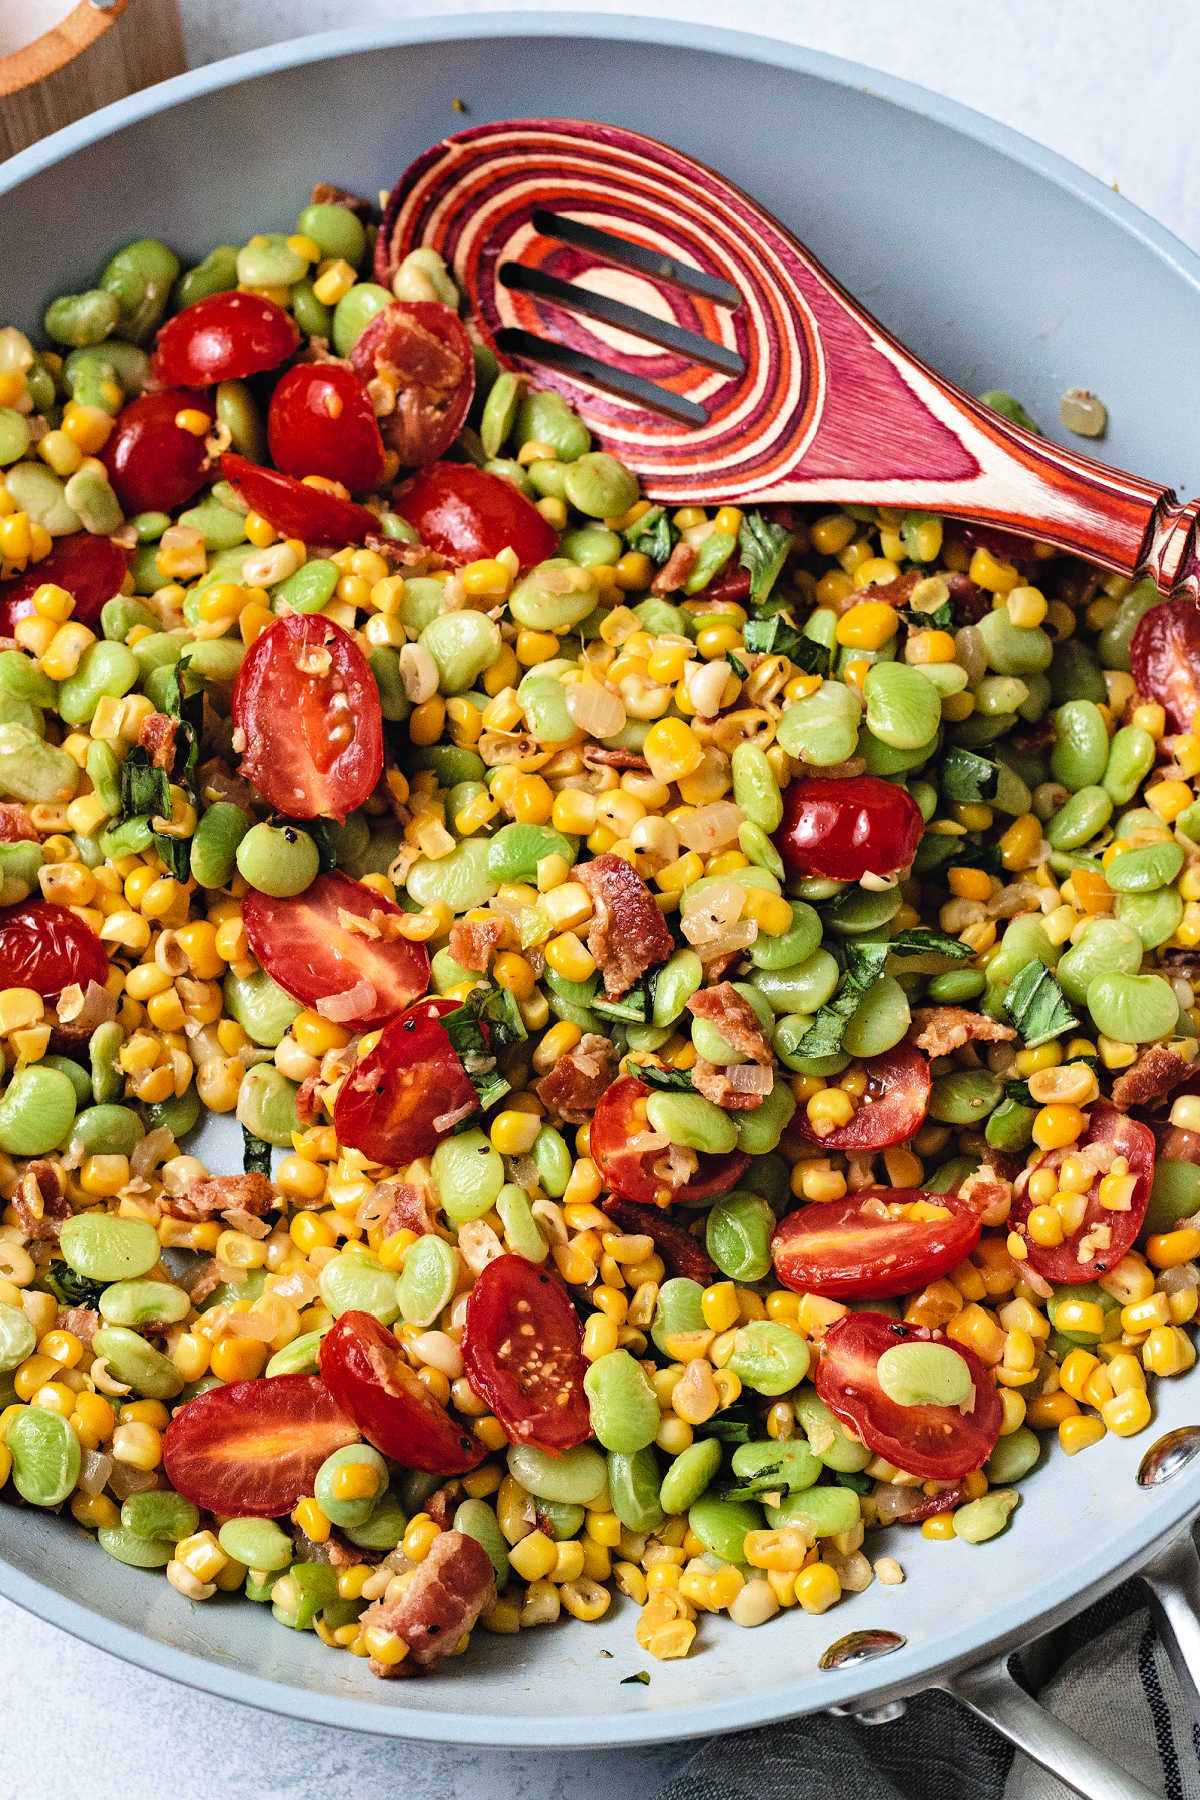 corn succotash with tomatoes and basil in a frying pan with a spoon.